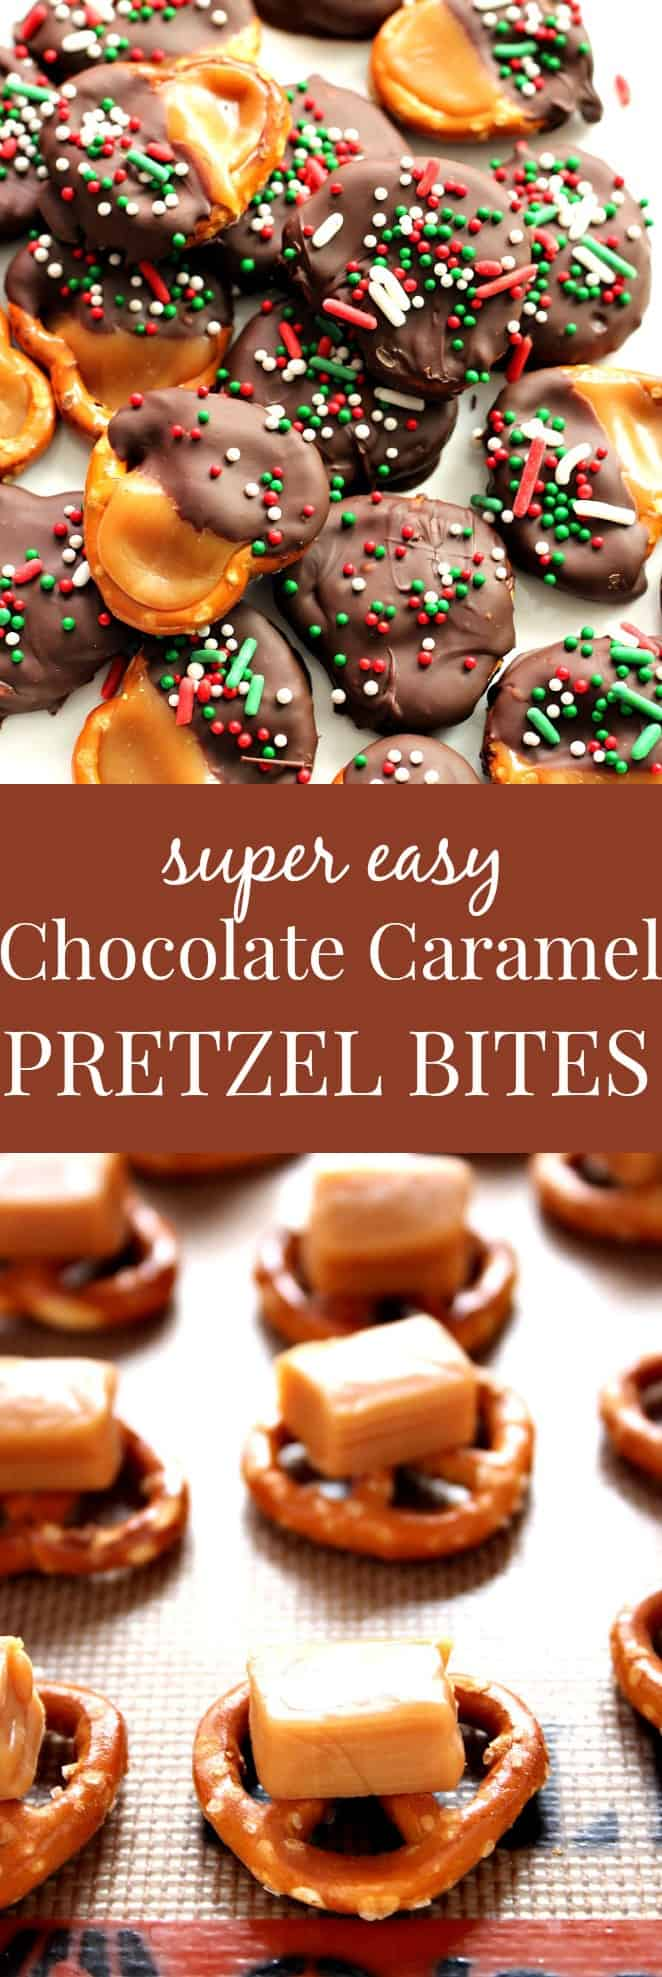 pretzel bites long Easy Chocolate Caramel Pretzel Bites Recipe